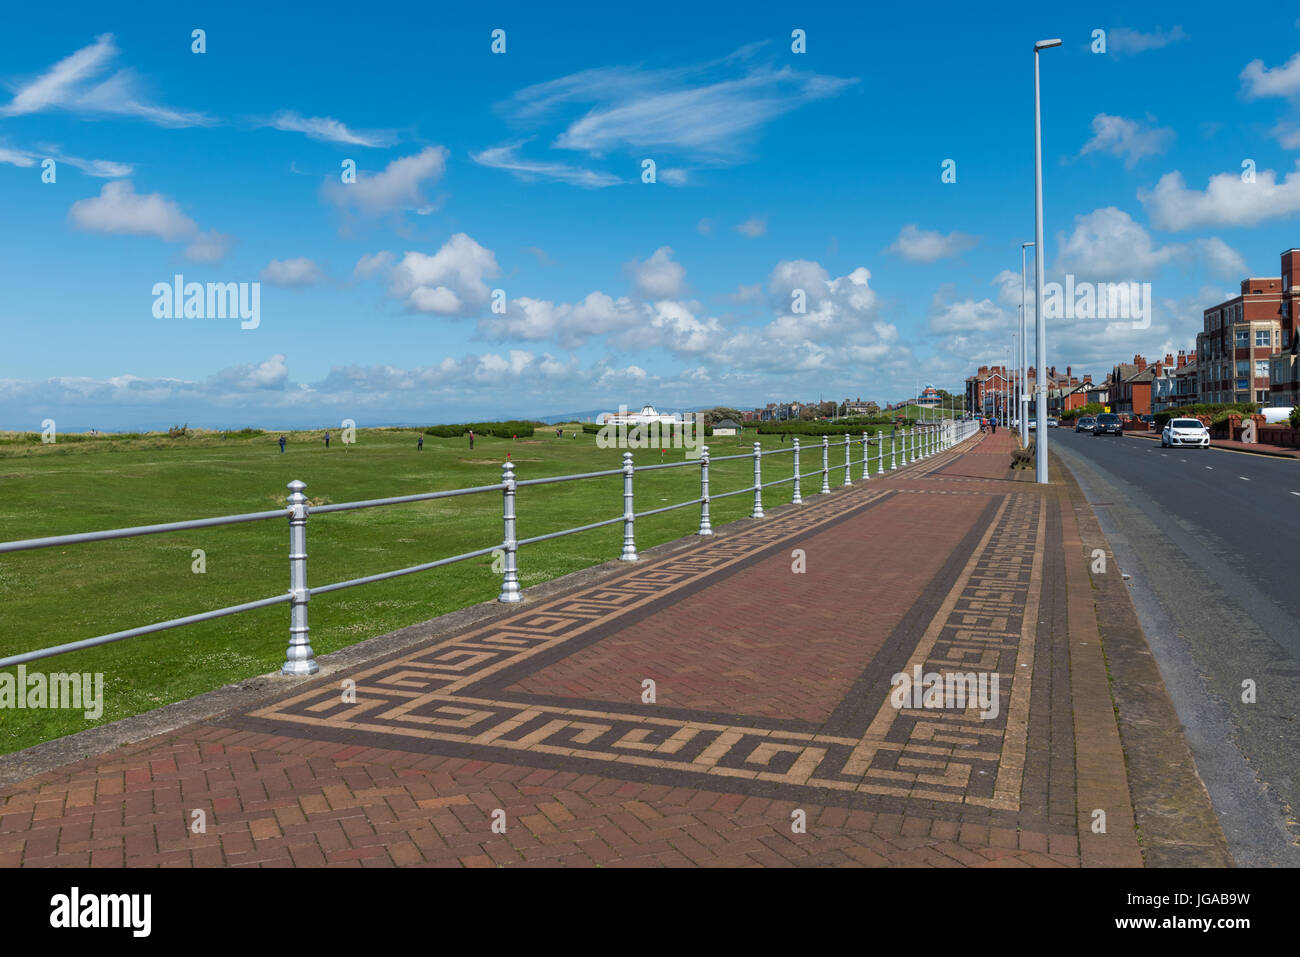 The Esplanade at Fleetwood on the Fylde Coast of Lancashire - Stock Image